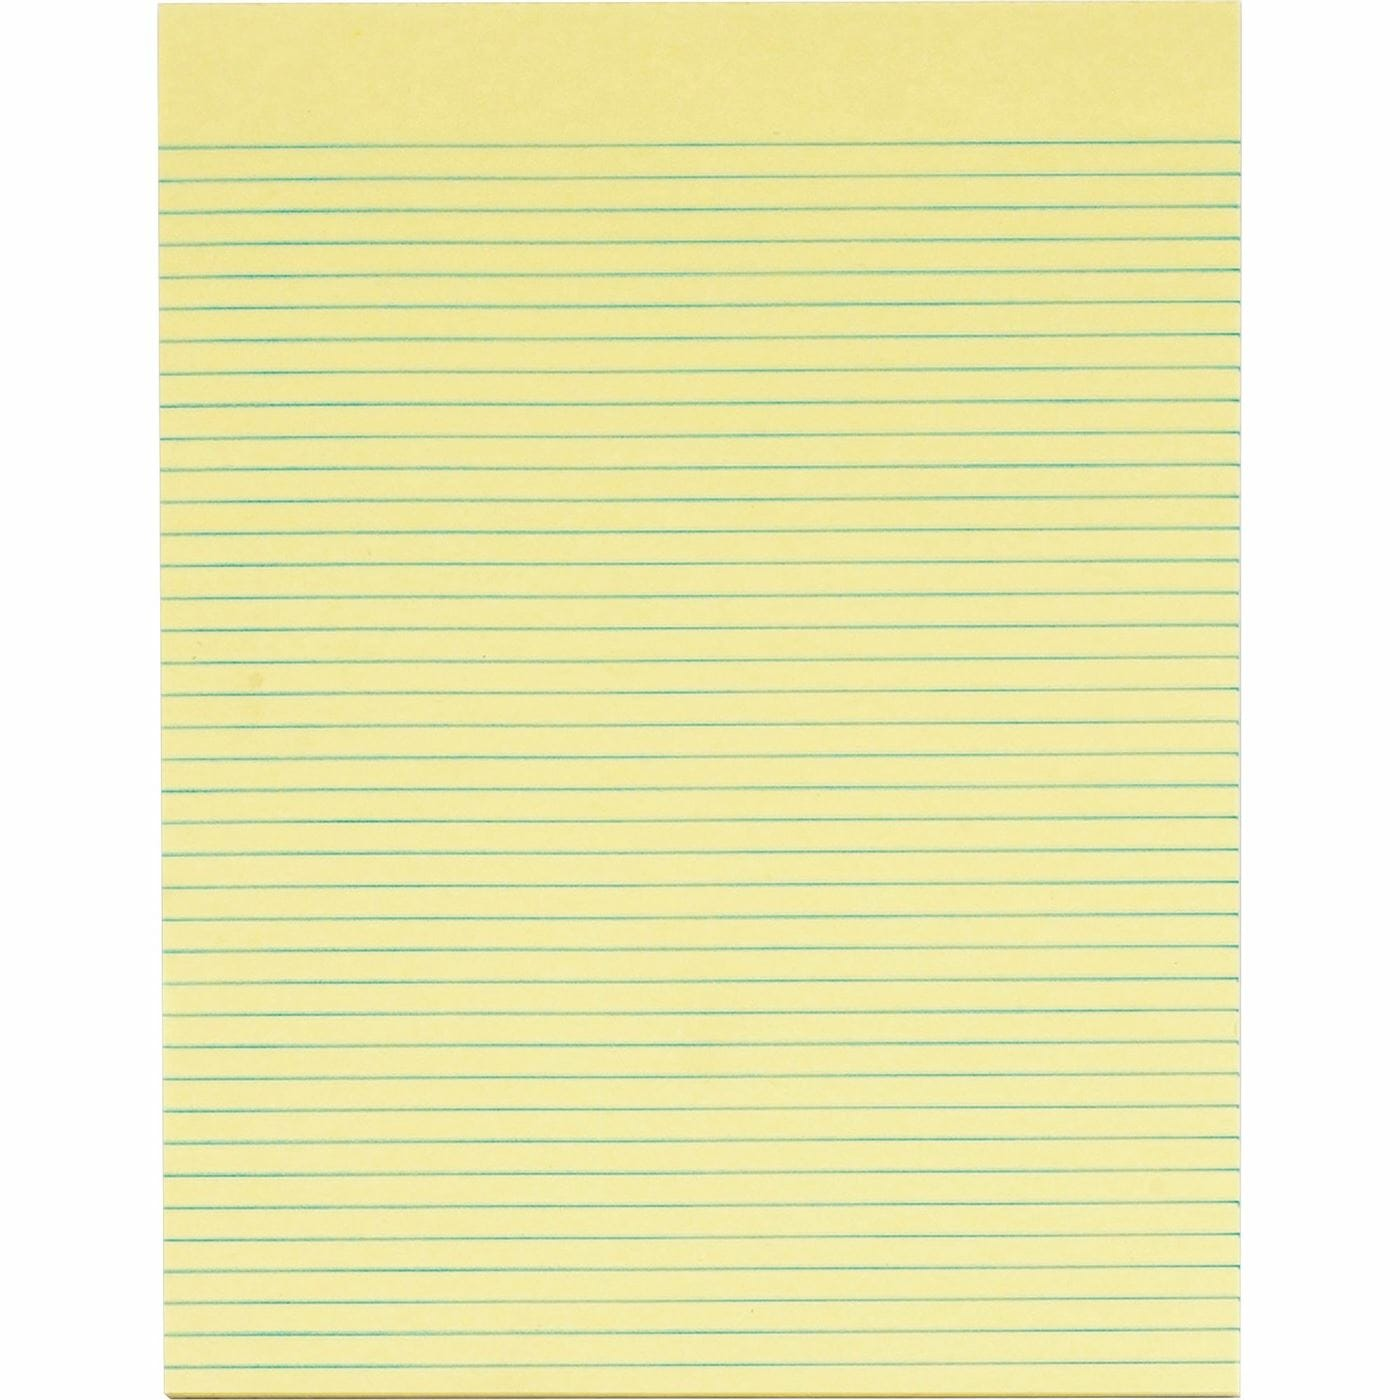 Writing Pad 15pk Letter Canary